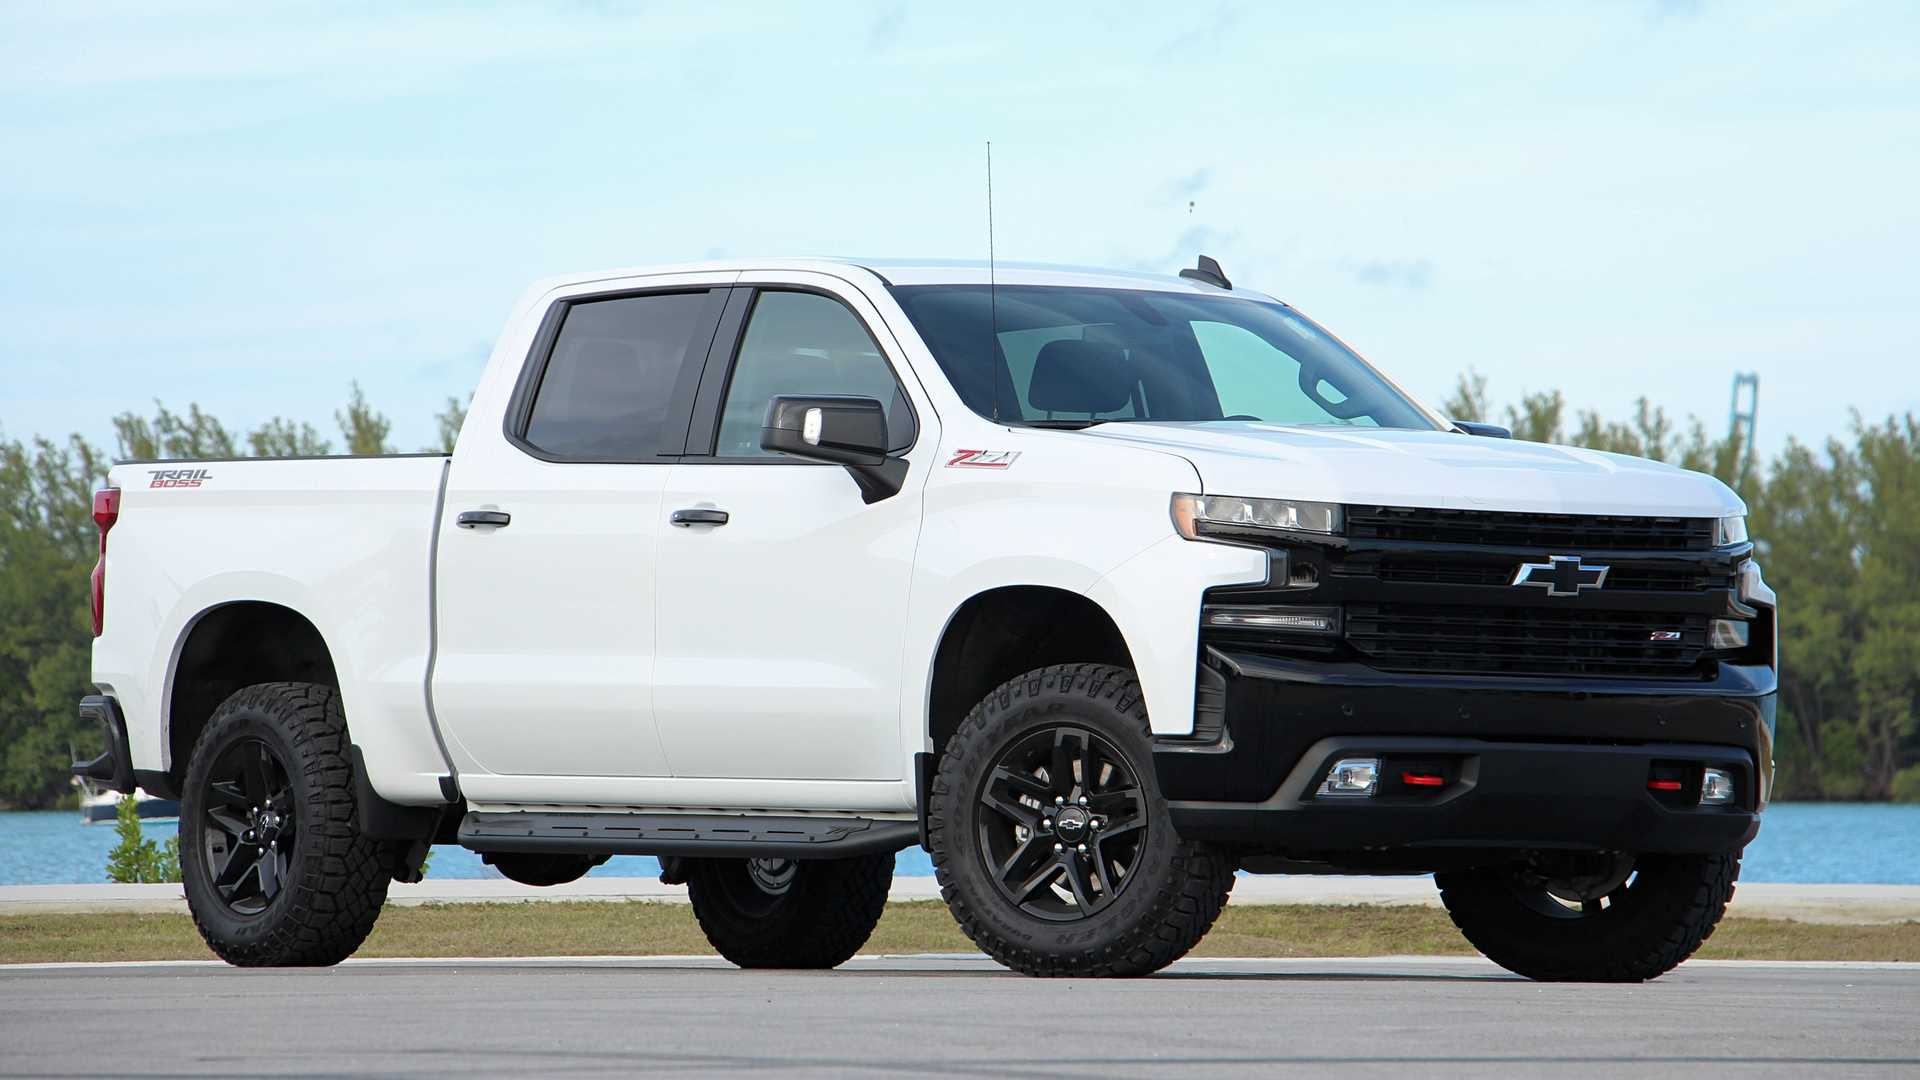 97 Best Review Best Gmc Vs Silverado 2019 Concept Redesign And Review Performance and New Engine with Best Gmc Vs Silverado 2019 Concept Redesign And Review